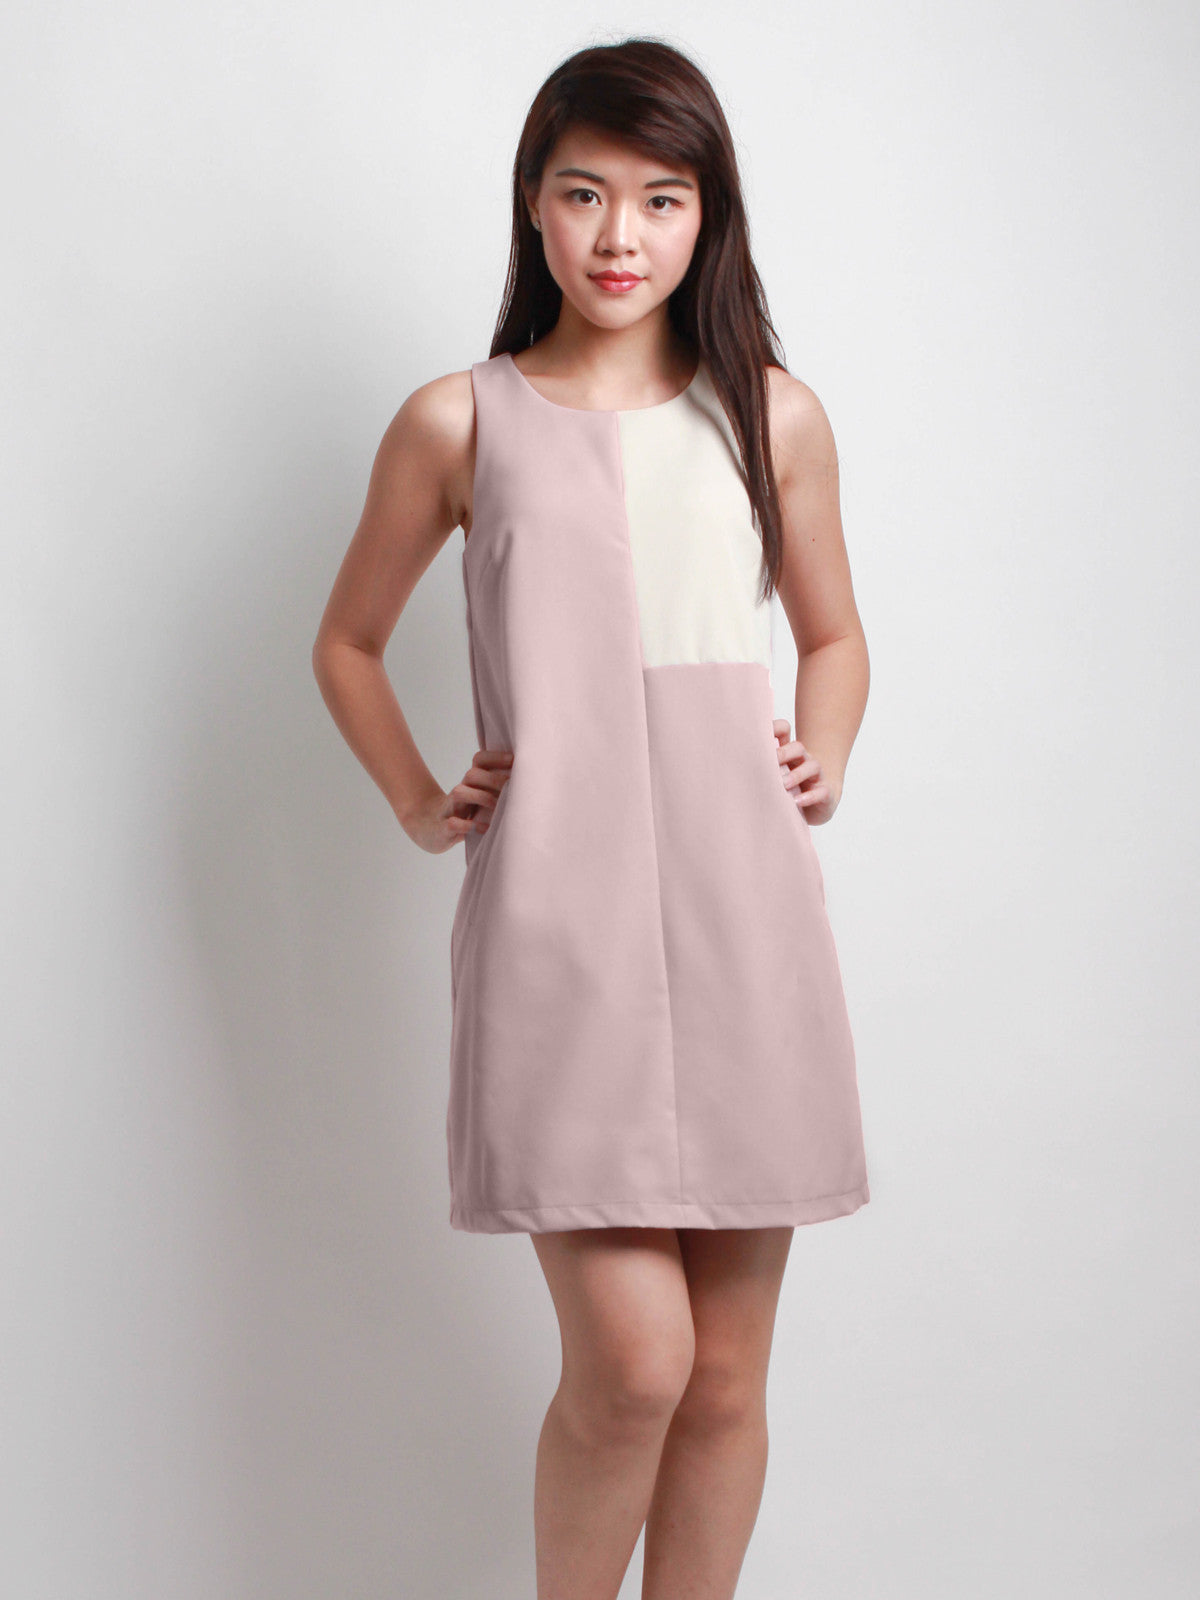 Cassandra Dual Tone Work Dress Pink